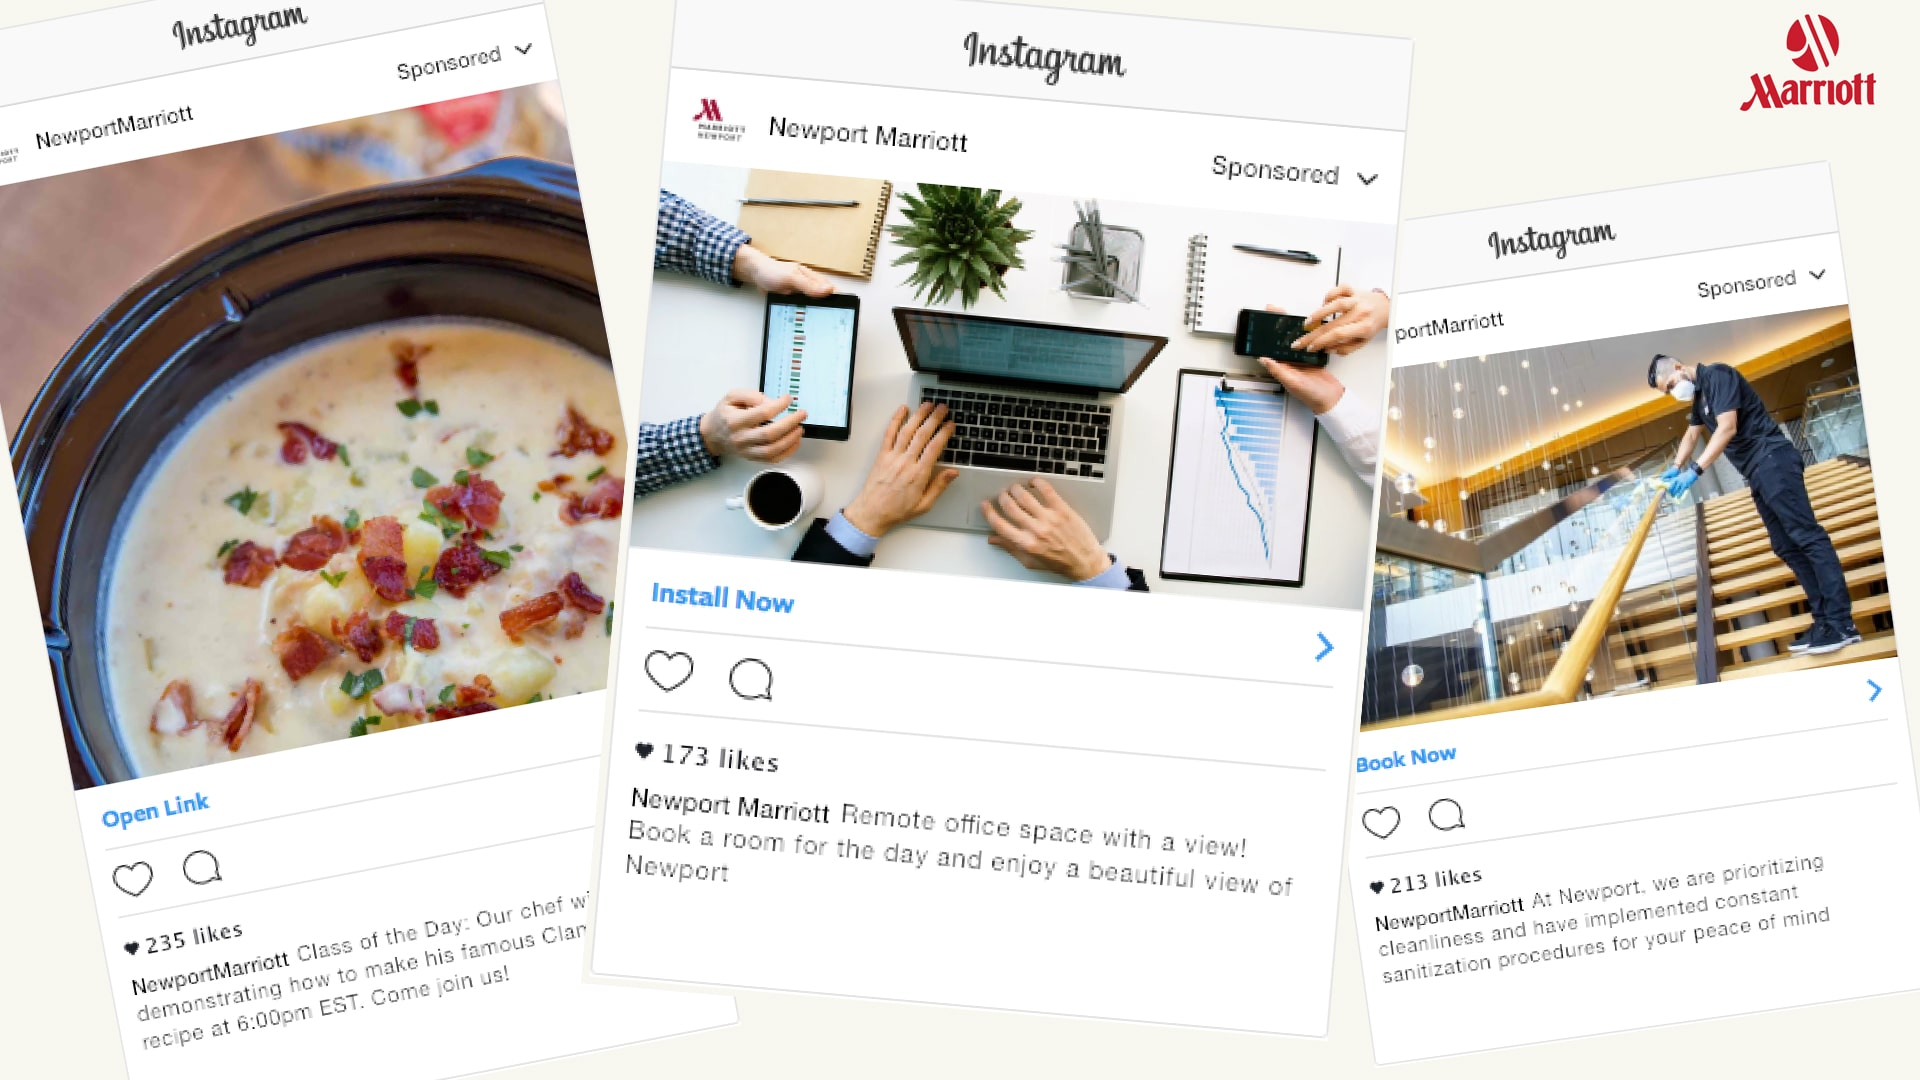 JWU students mocked up Instagram posts as part of their consulting work with the Newport Marriott.